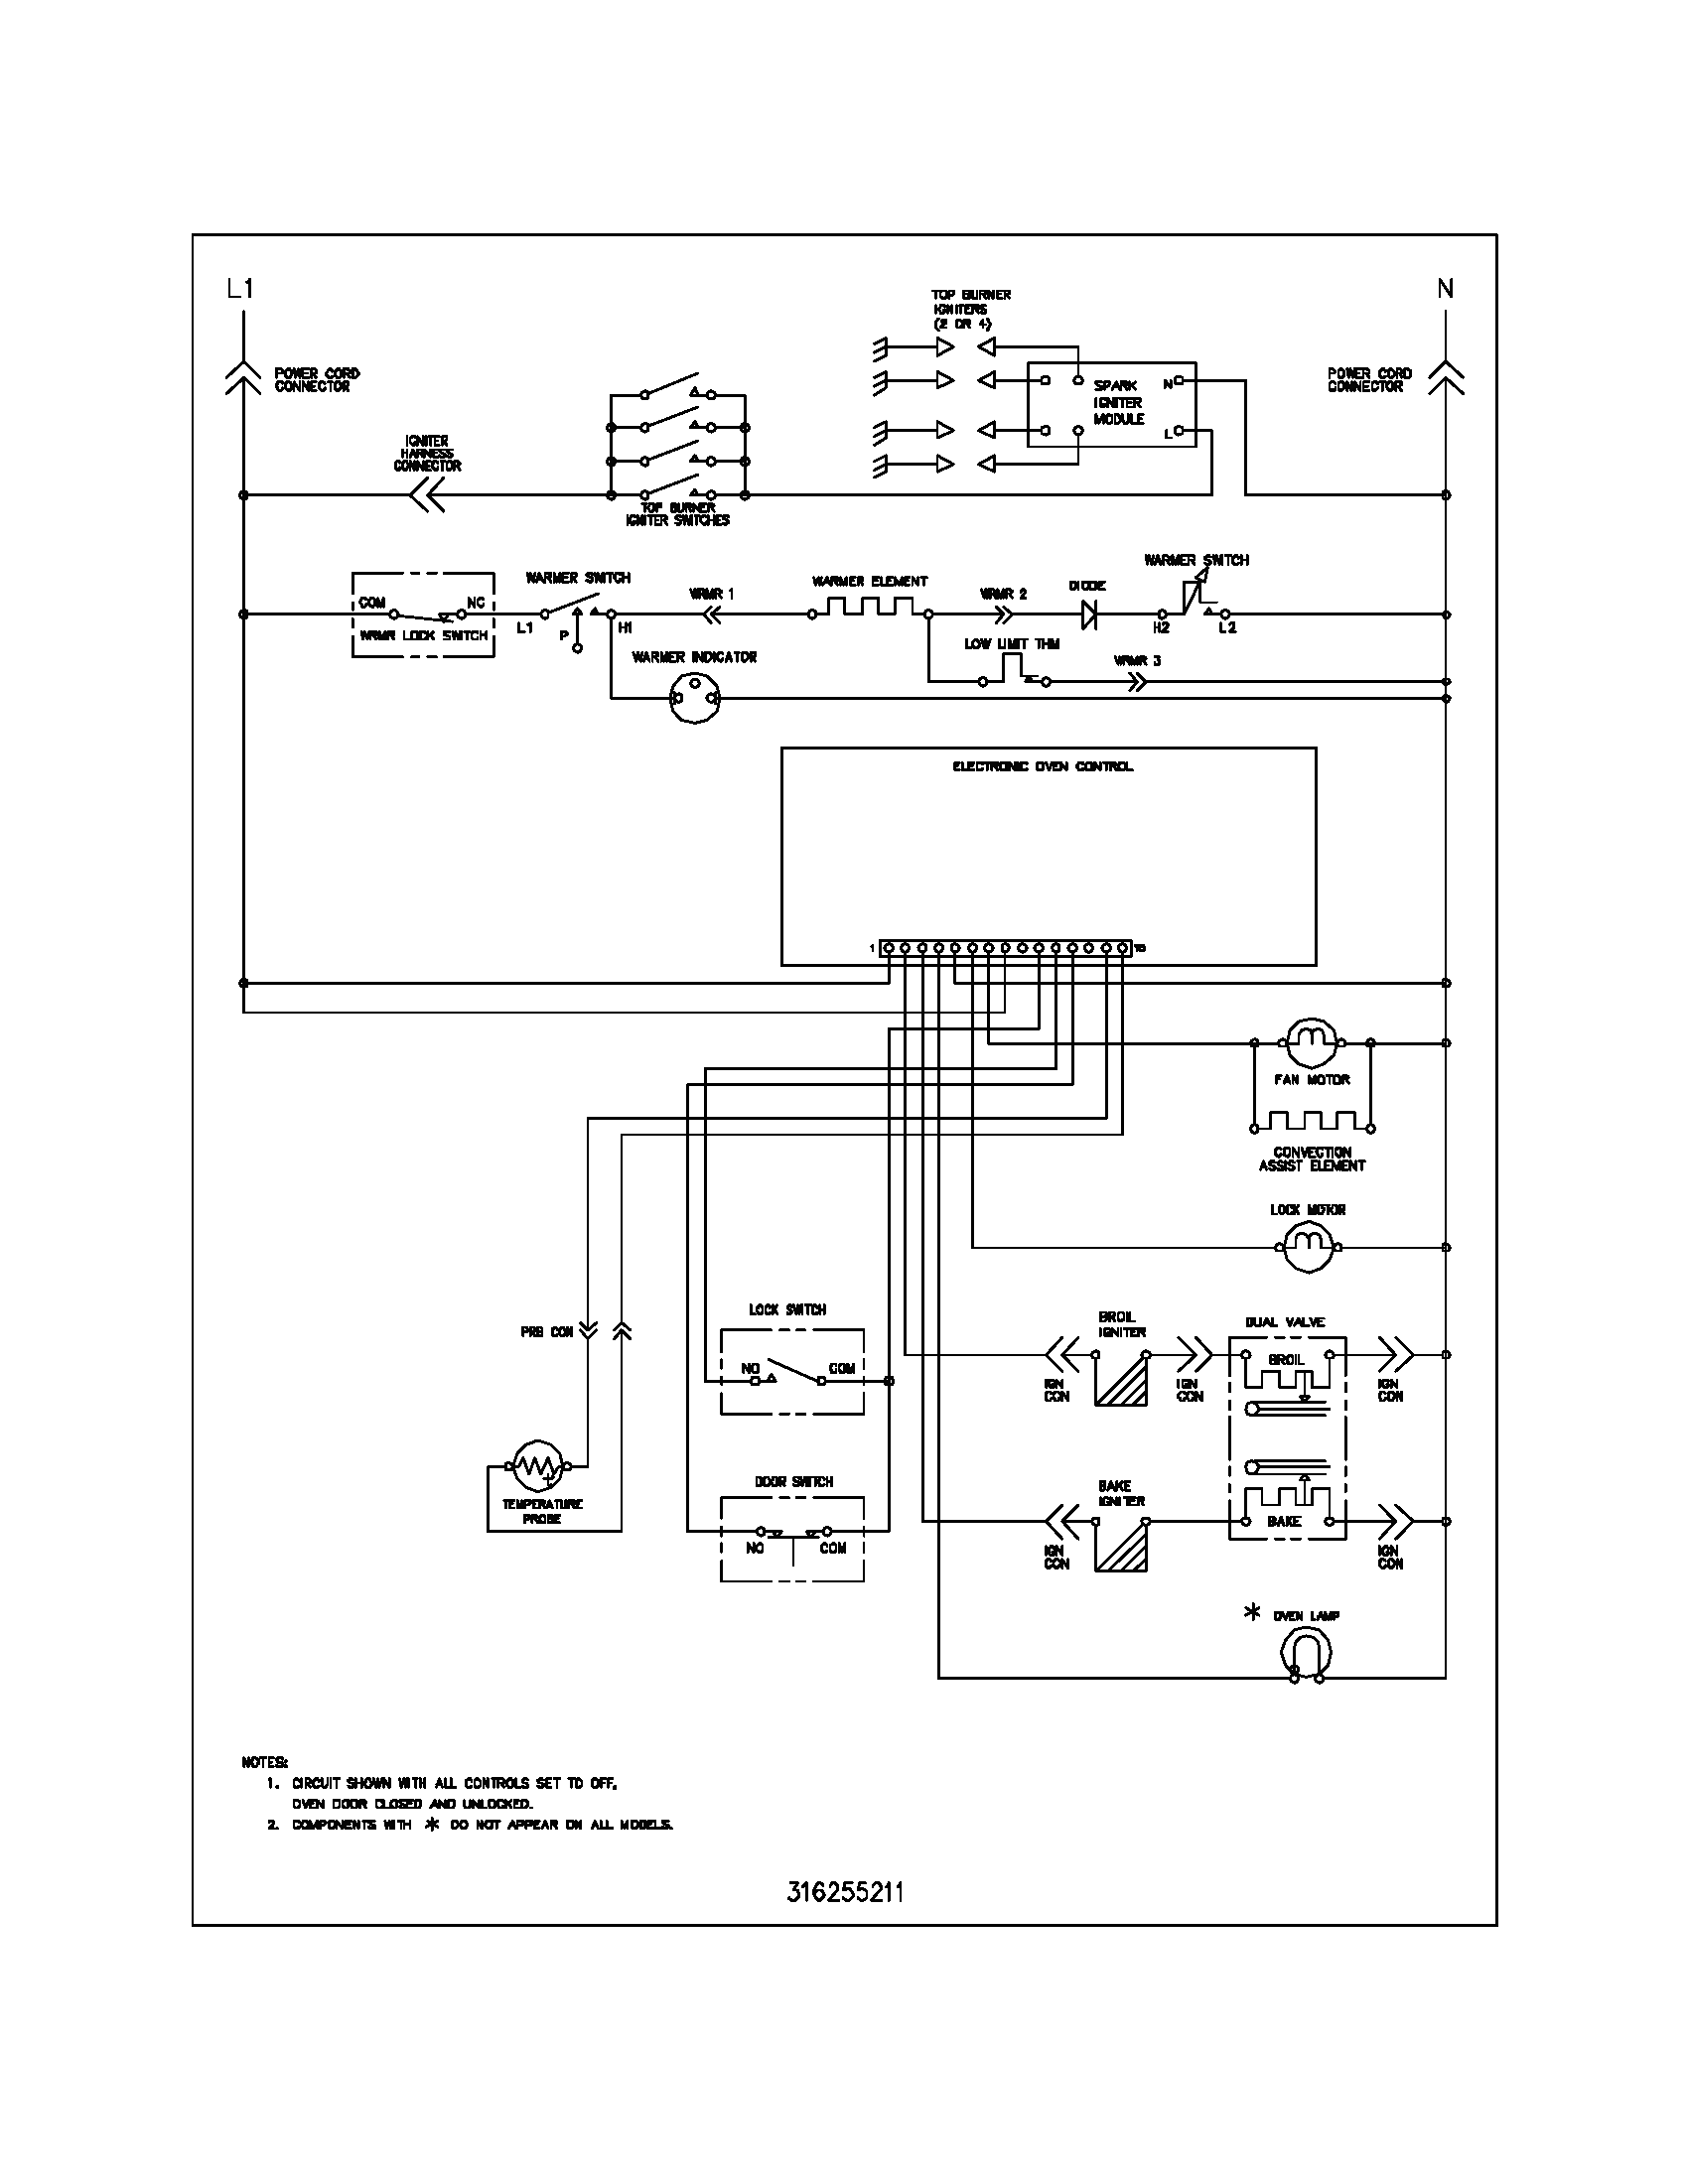 general electric furnace wiring diagram wiring diagrams konsult ge furnace wiring diagram wiring diagram query furnace [ 1700 x 2200 Pixel ]